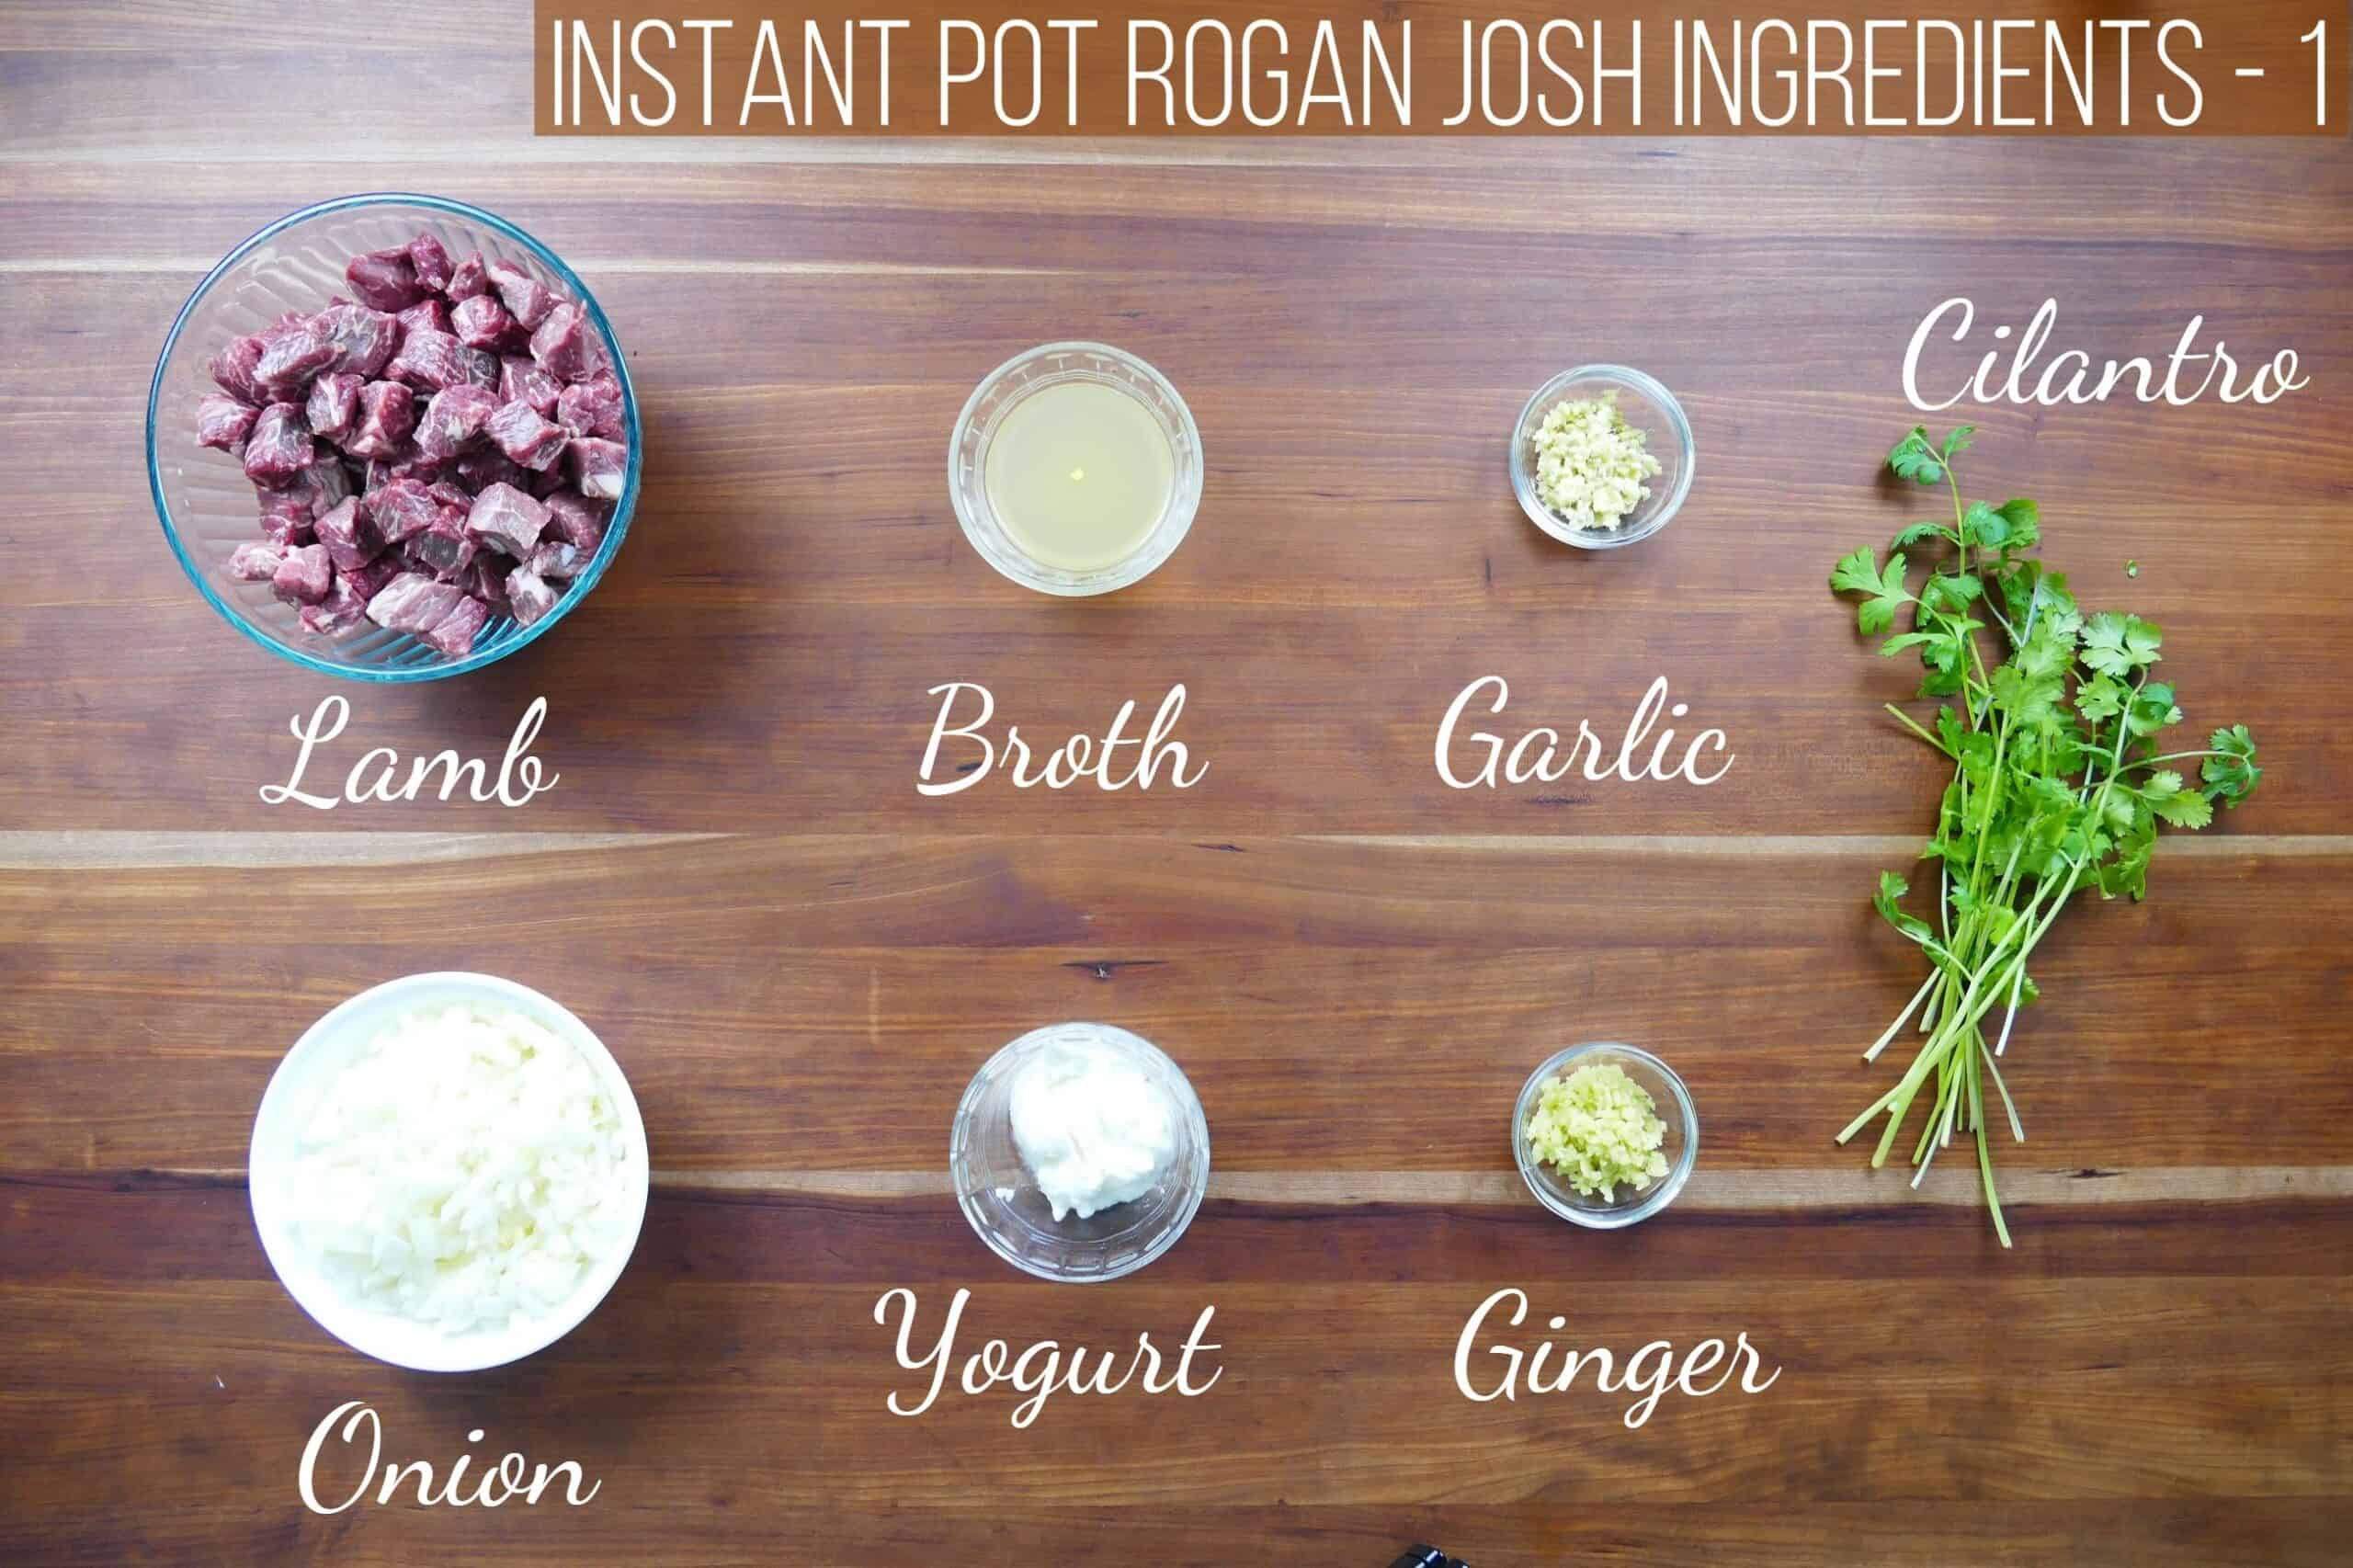 Instant Pot Rogan Josh ingredients - lamb, broth, garlic, onion, yogurt, ginger, cilantro